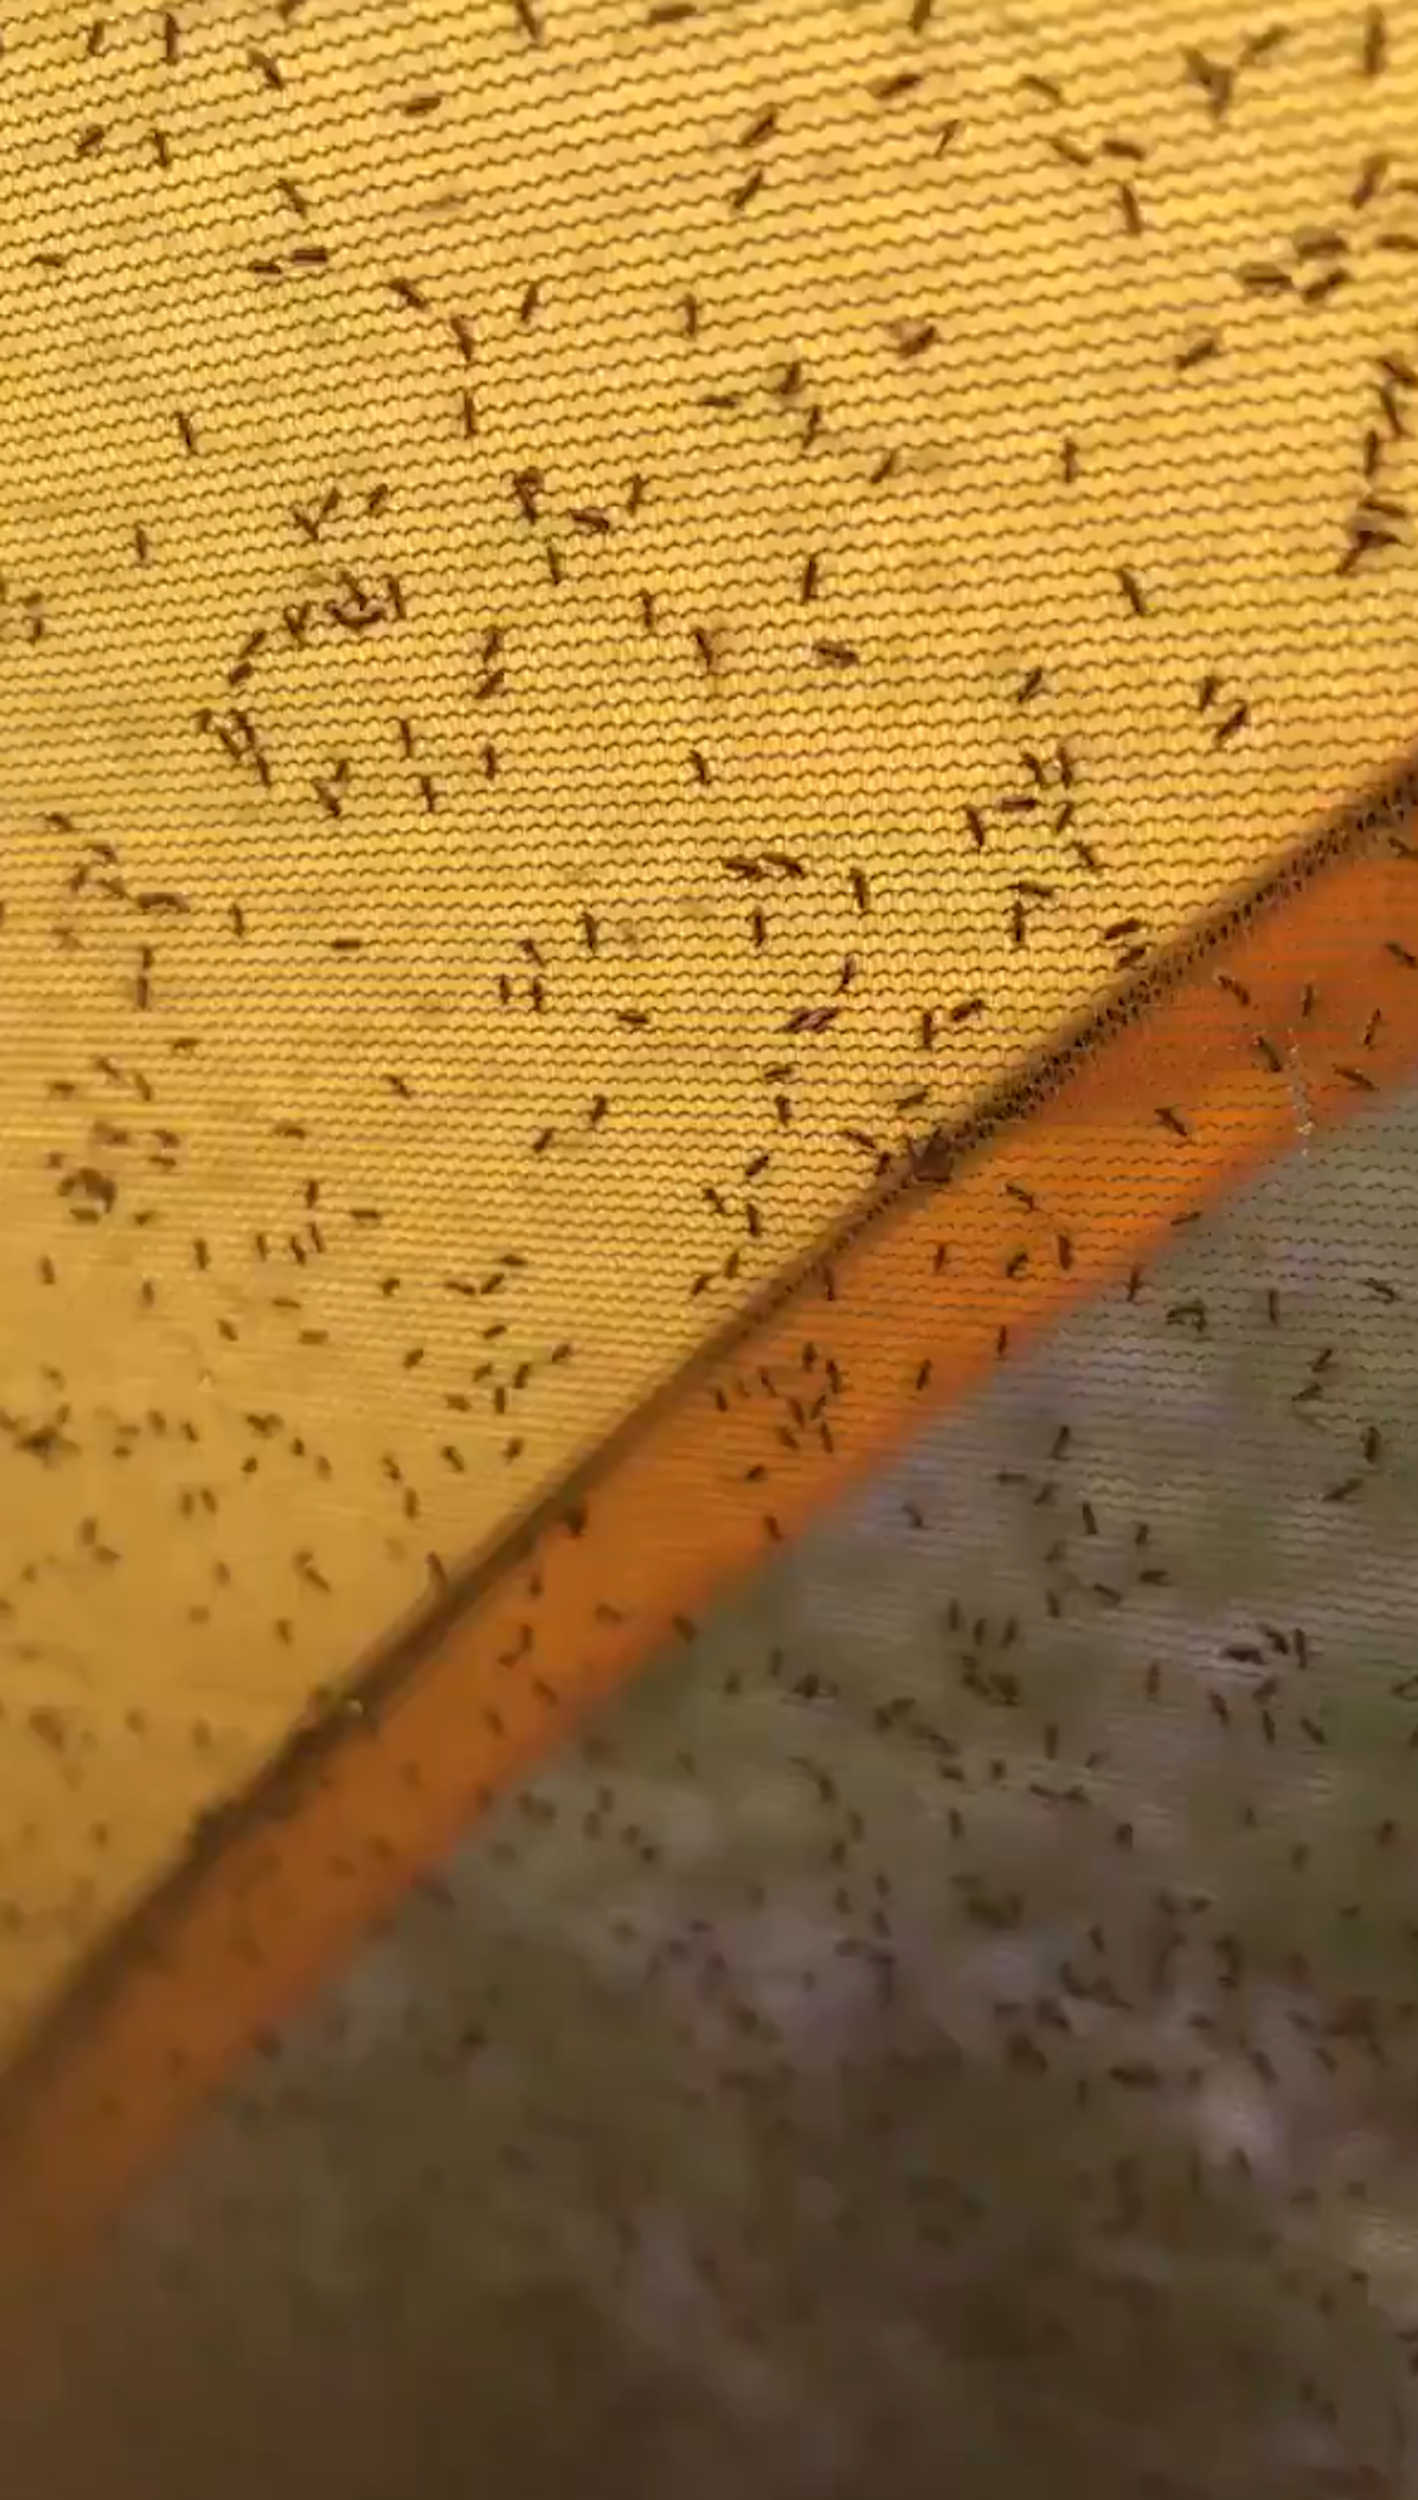 Clouds of midges can be seen trying to push through the mesh | By Deadline News- Scottish News